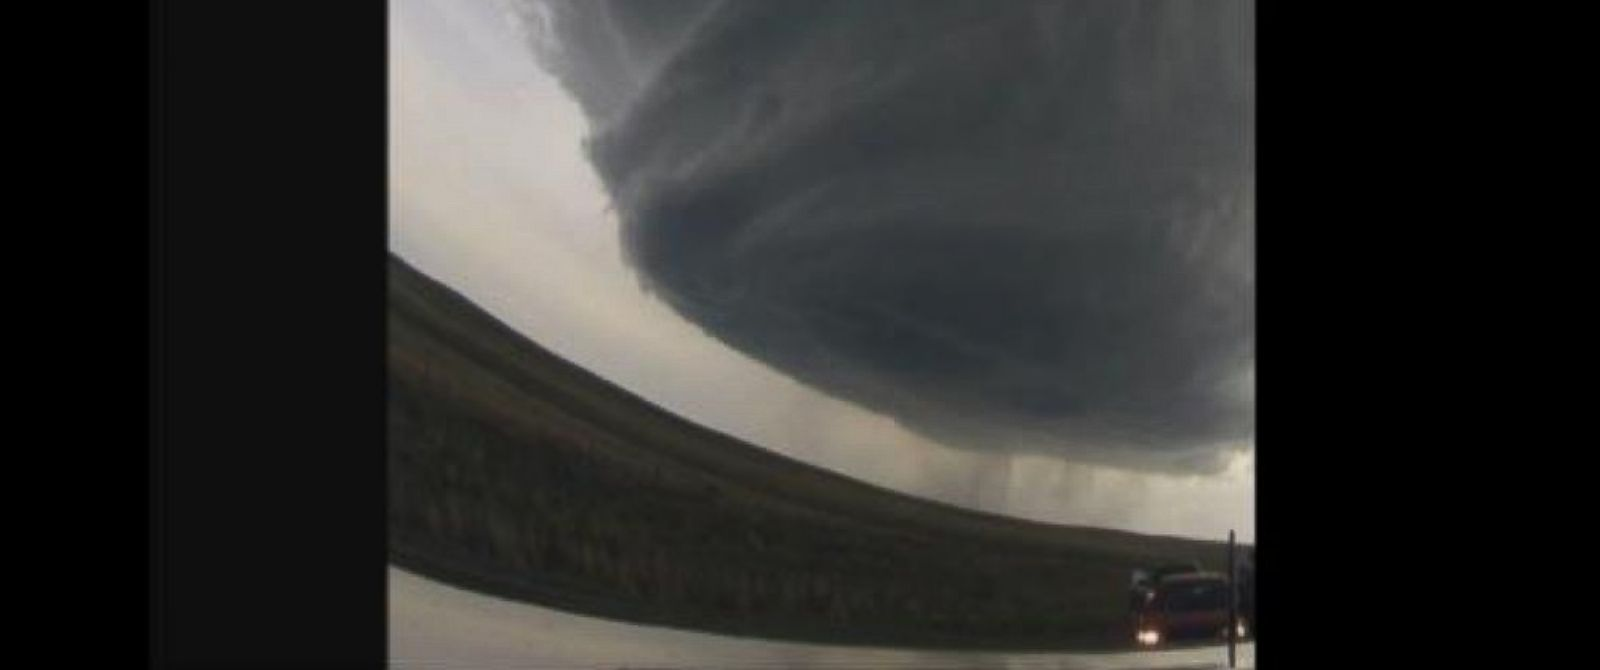 PHOTO: Storm chasers capture tornado in Wyoming.